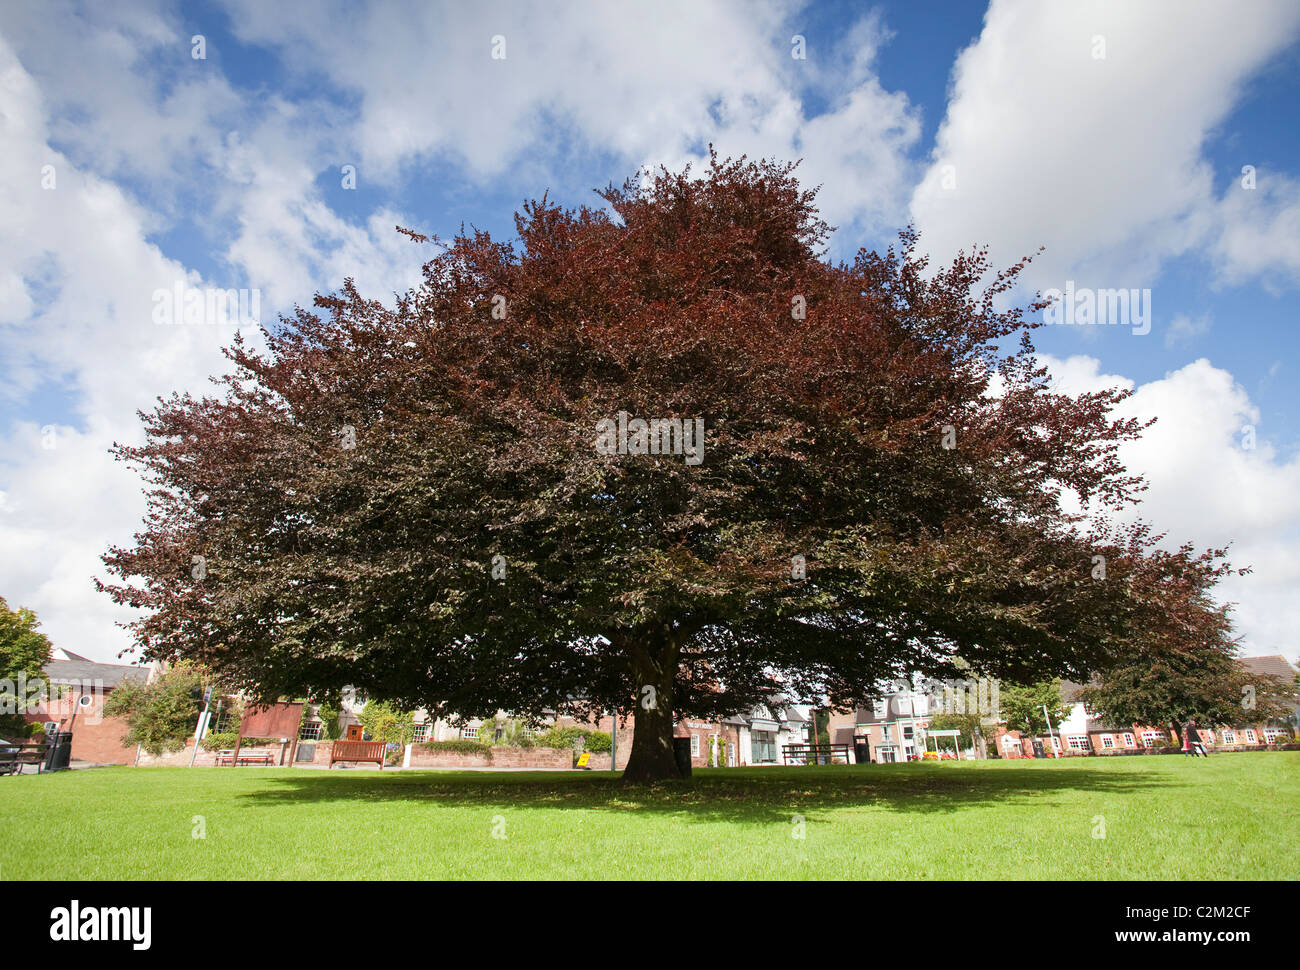 Single copper beech tree in full bloom on a village green in summer, Willaston, Wirral, England, UK - Stock Image